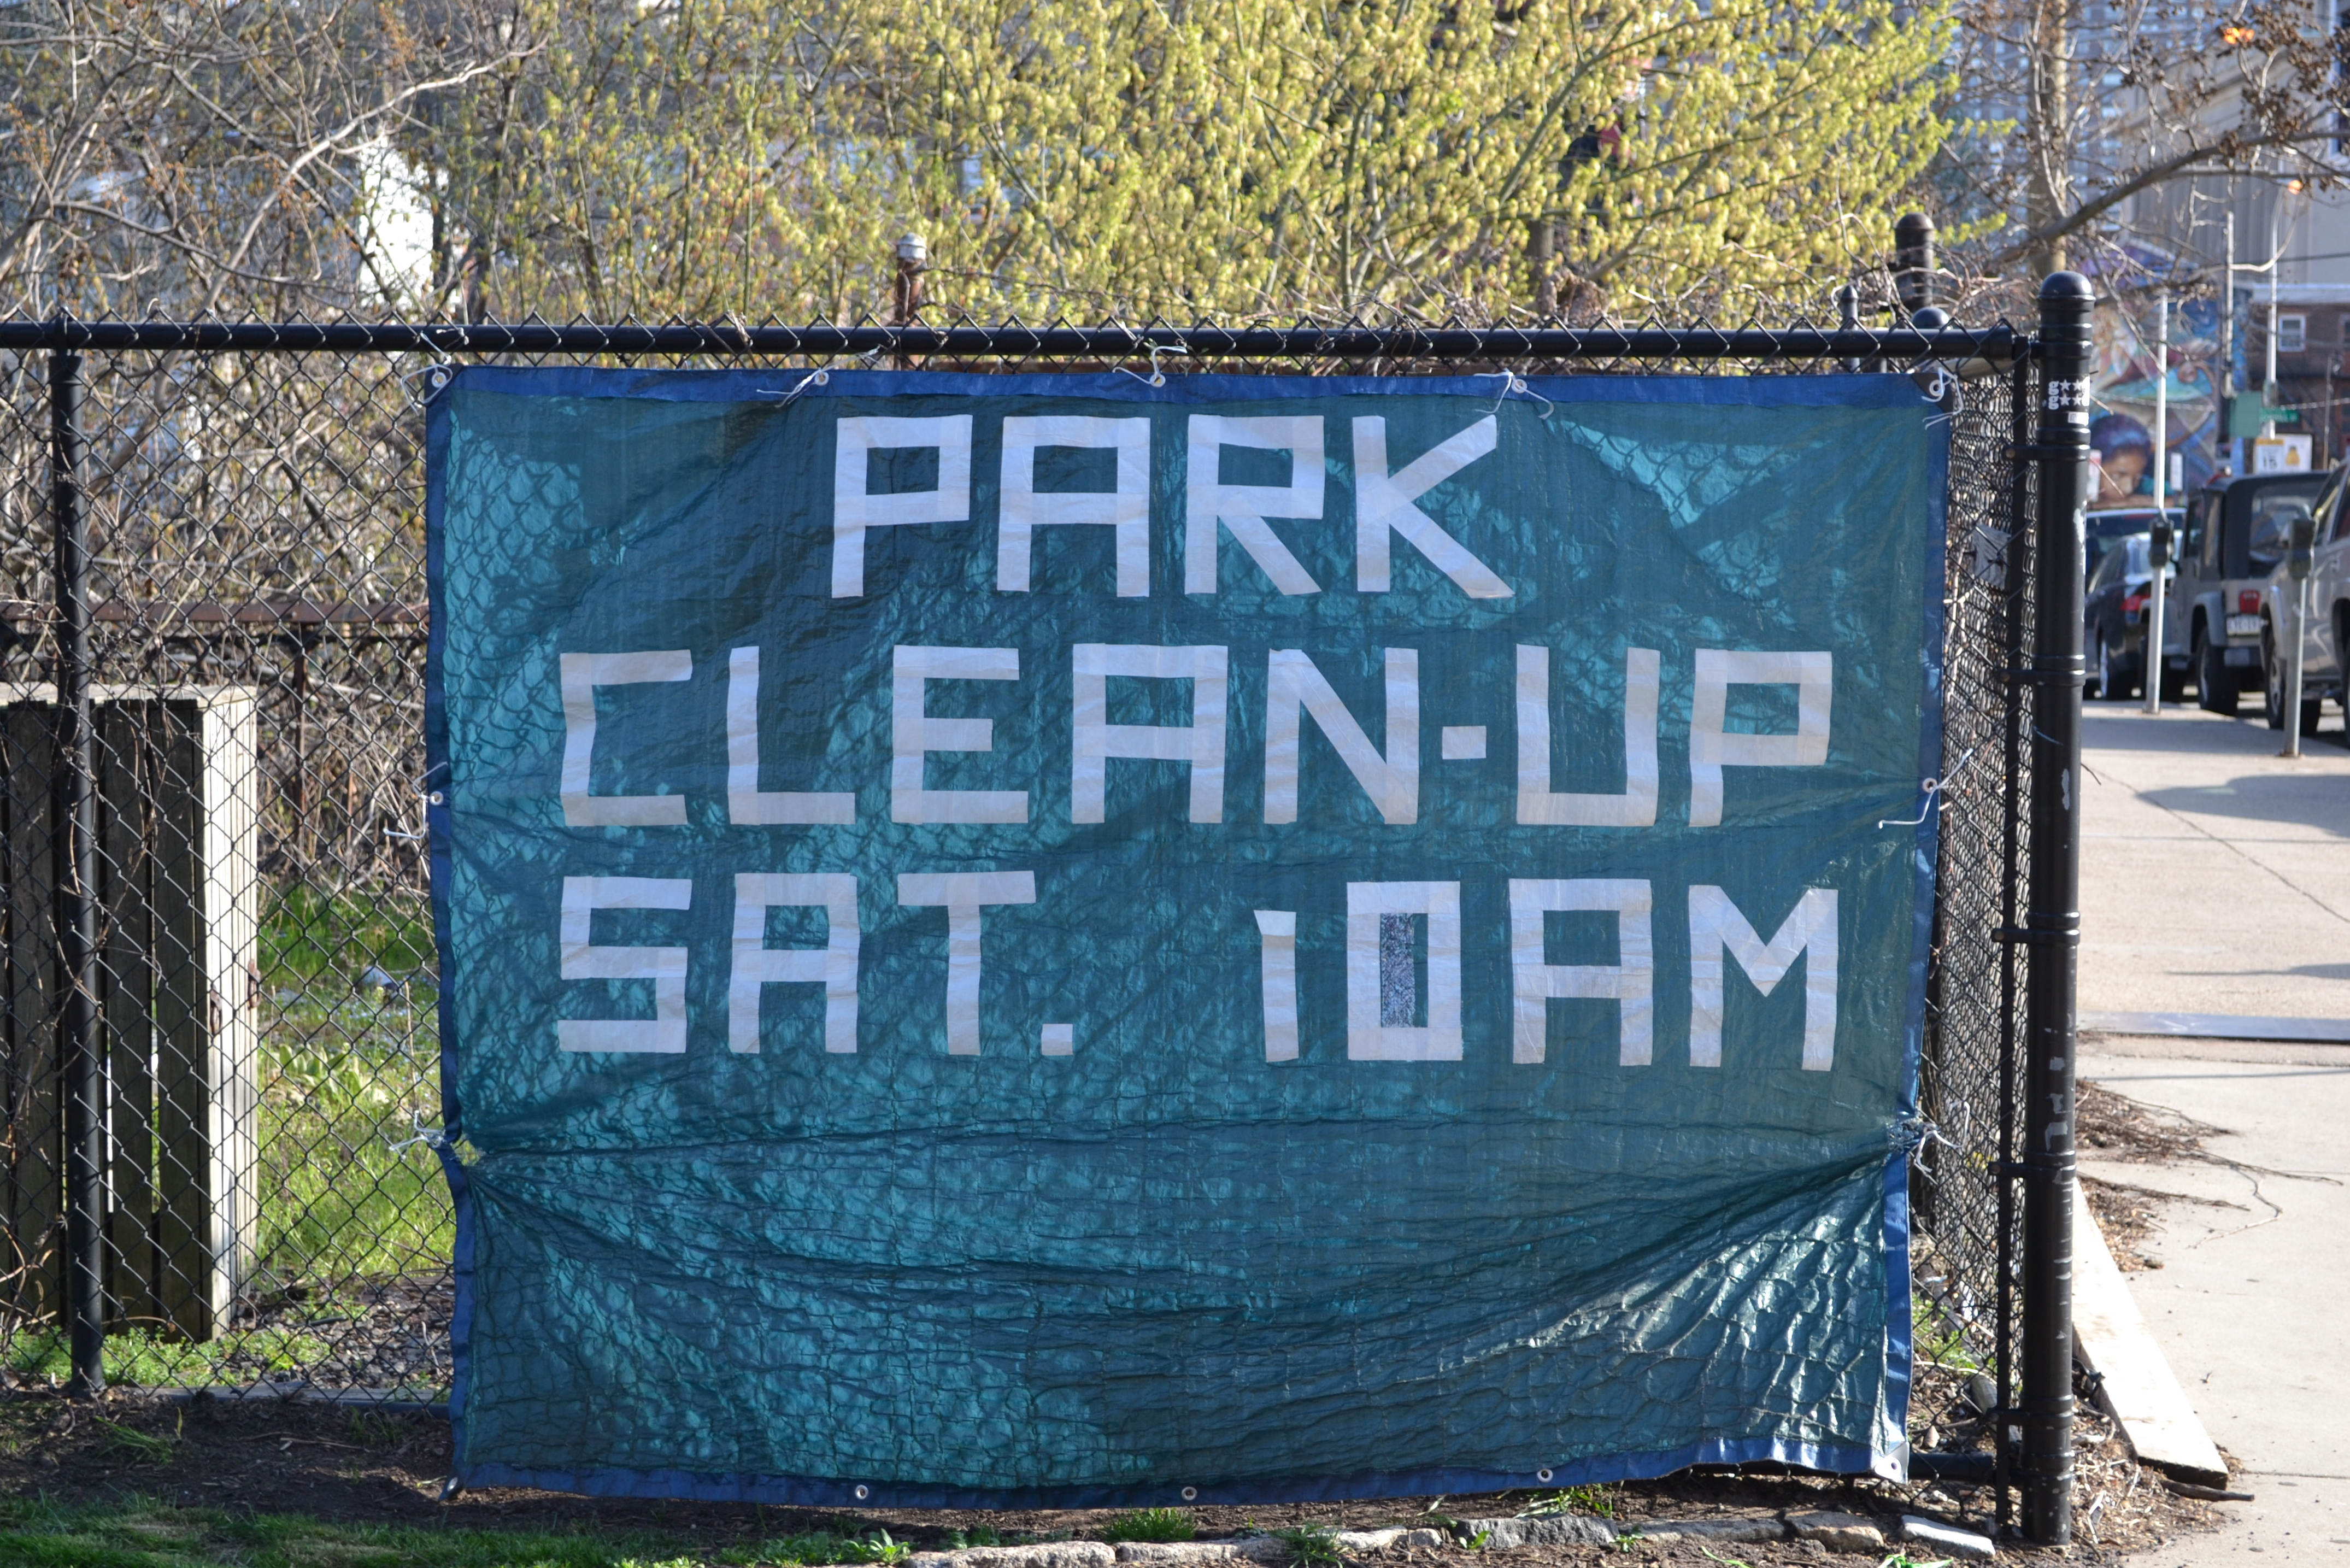 Philadelphia Streets Department is hosting the 6th annual Philly Spring Cleanup Saturday, April 13